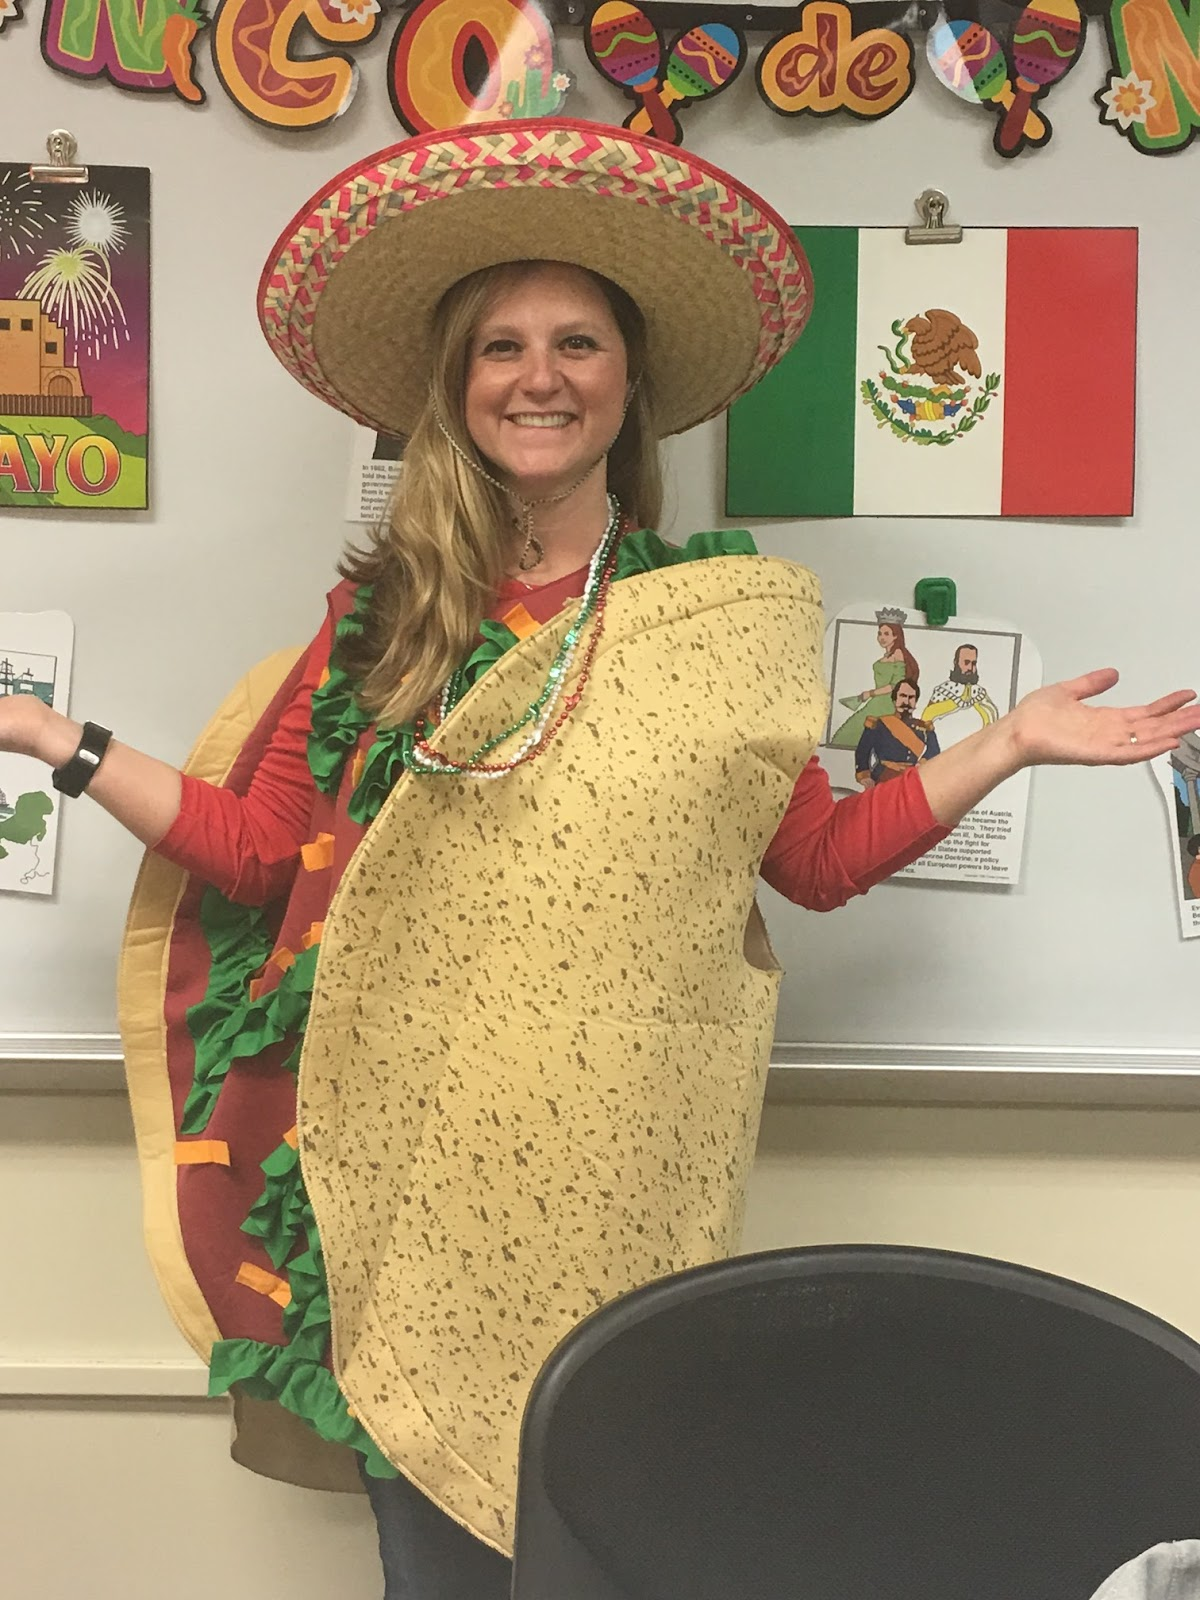 Mrs. Olexenko in a taco costume.